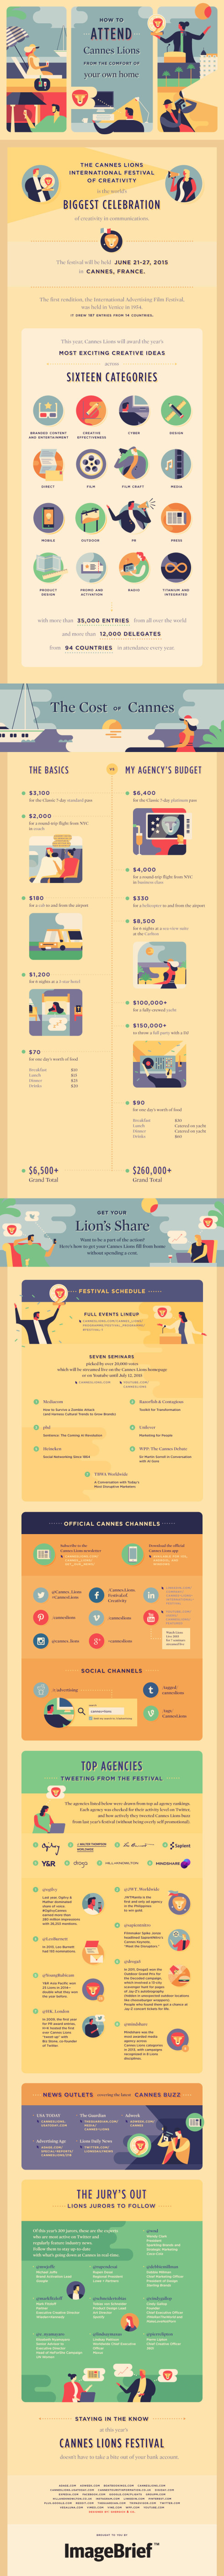 cannes-lions-infographic-3-2